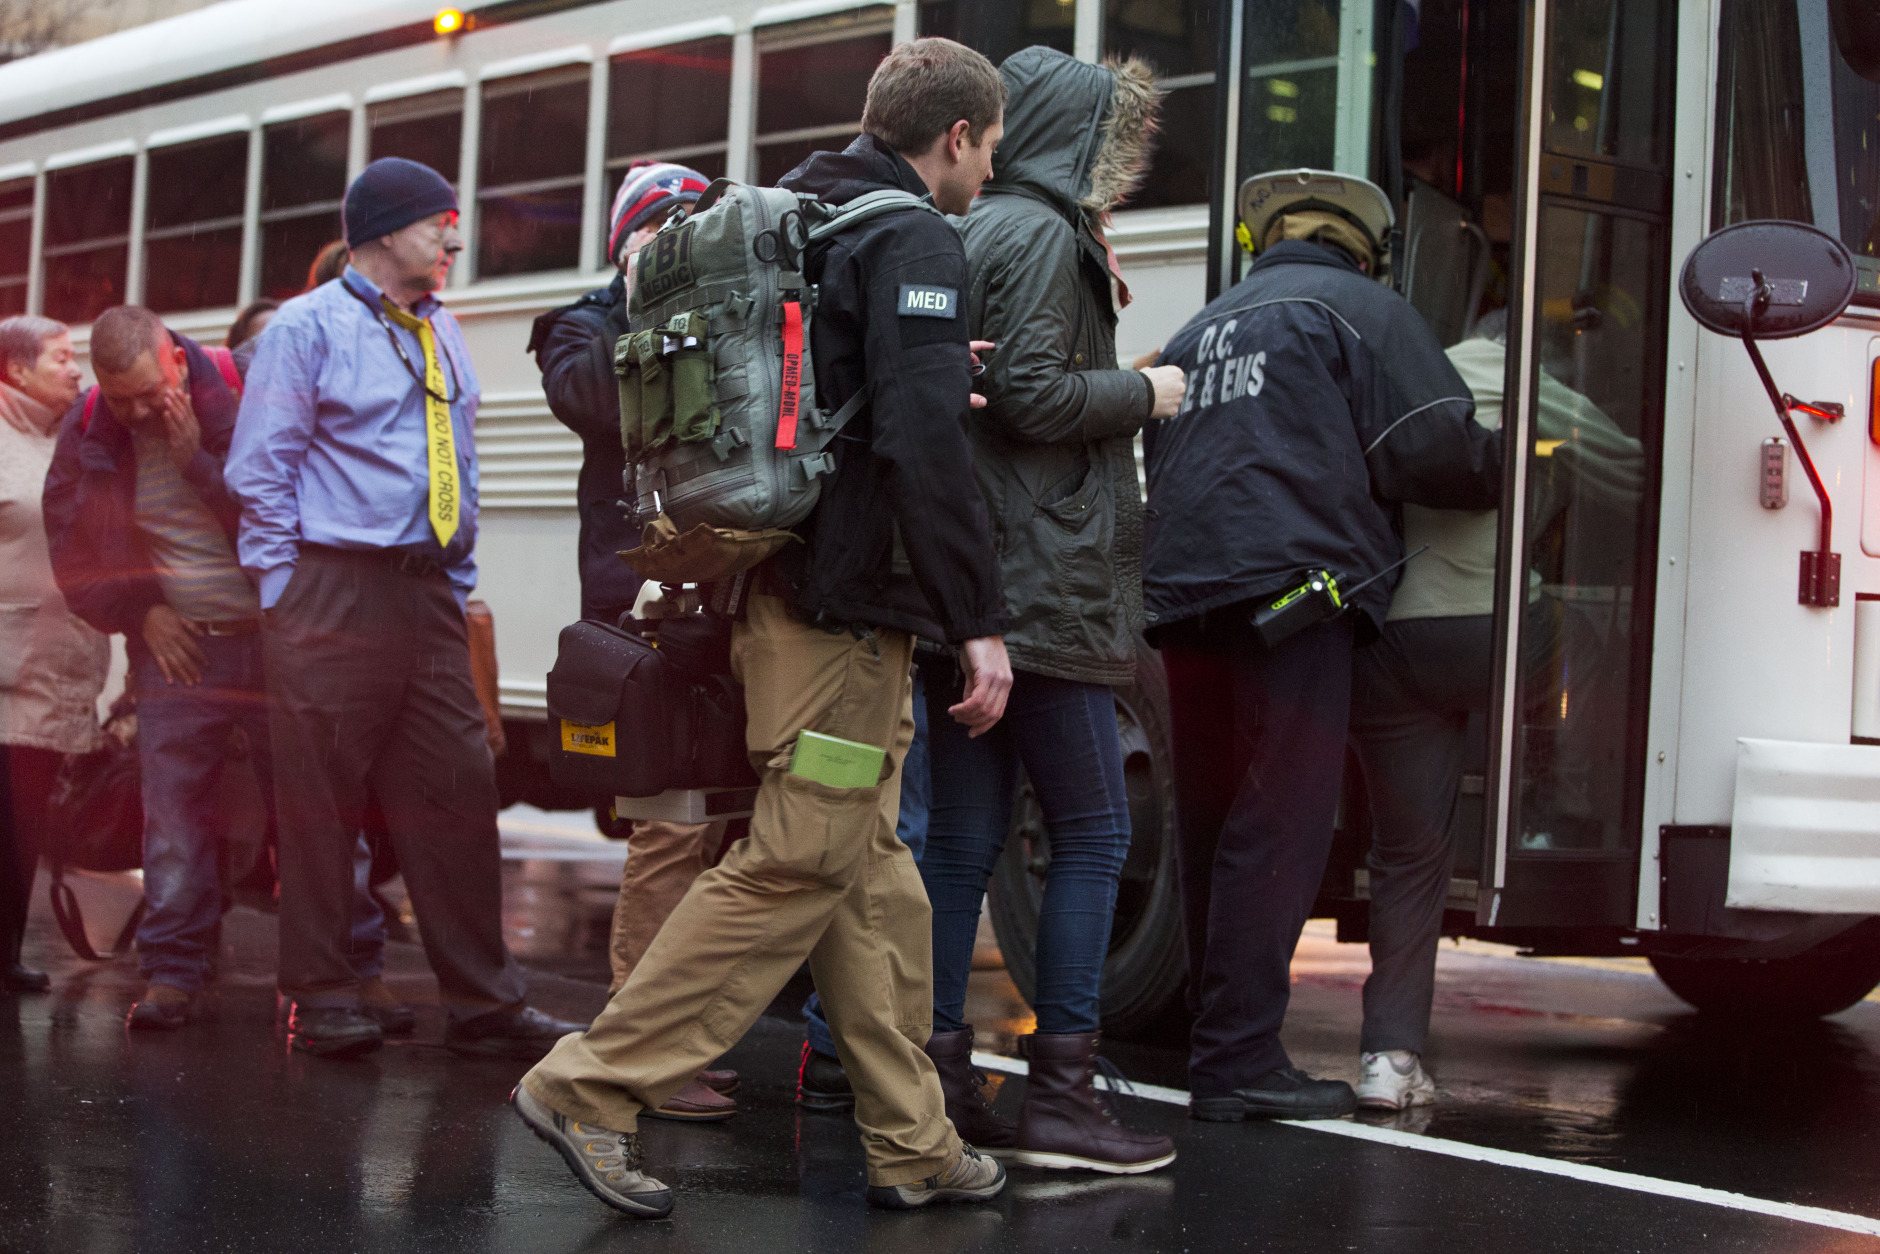 An FBI Medic, center, helps people onto a bus after they were evacuated from a smoke filled Metro subway tunnel in Washington, Monday, Jan. 12, 2015. Metro officials say one of the busiest stations in downtown Washington has been evacuated because of smoke.  Authorities say the source of the smoke is unknown.   (AP Photo/Jacquelyn Martin)